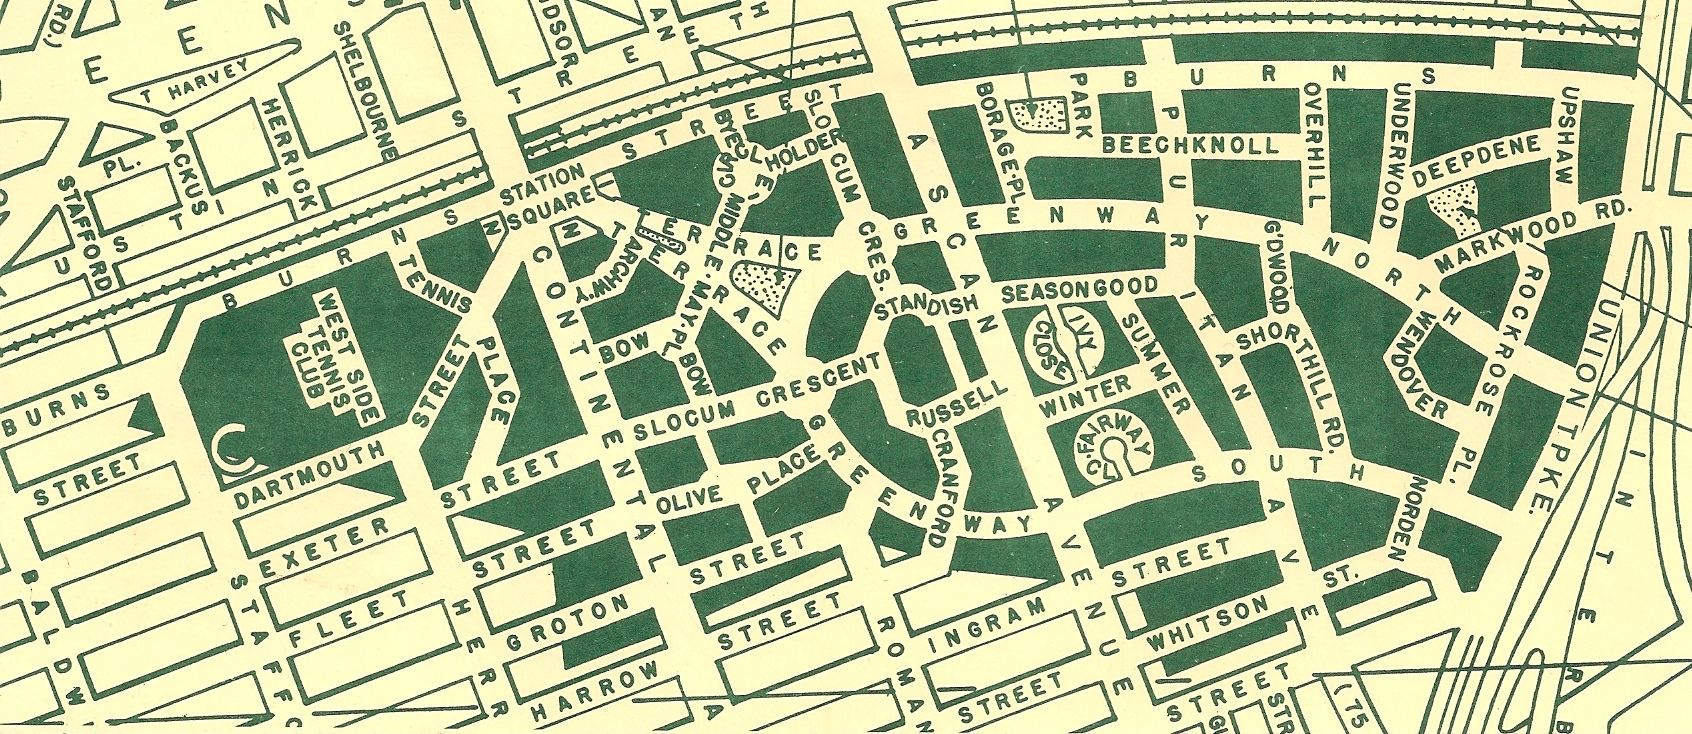 Subjective Cartography Of Forest Hills Forest Hills Gardens